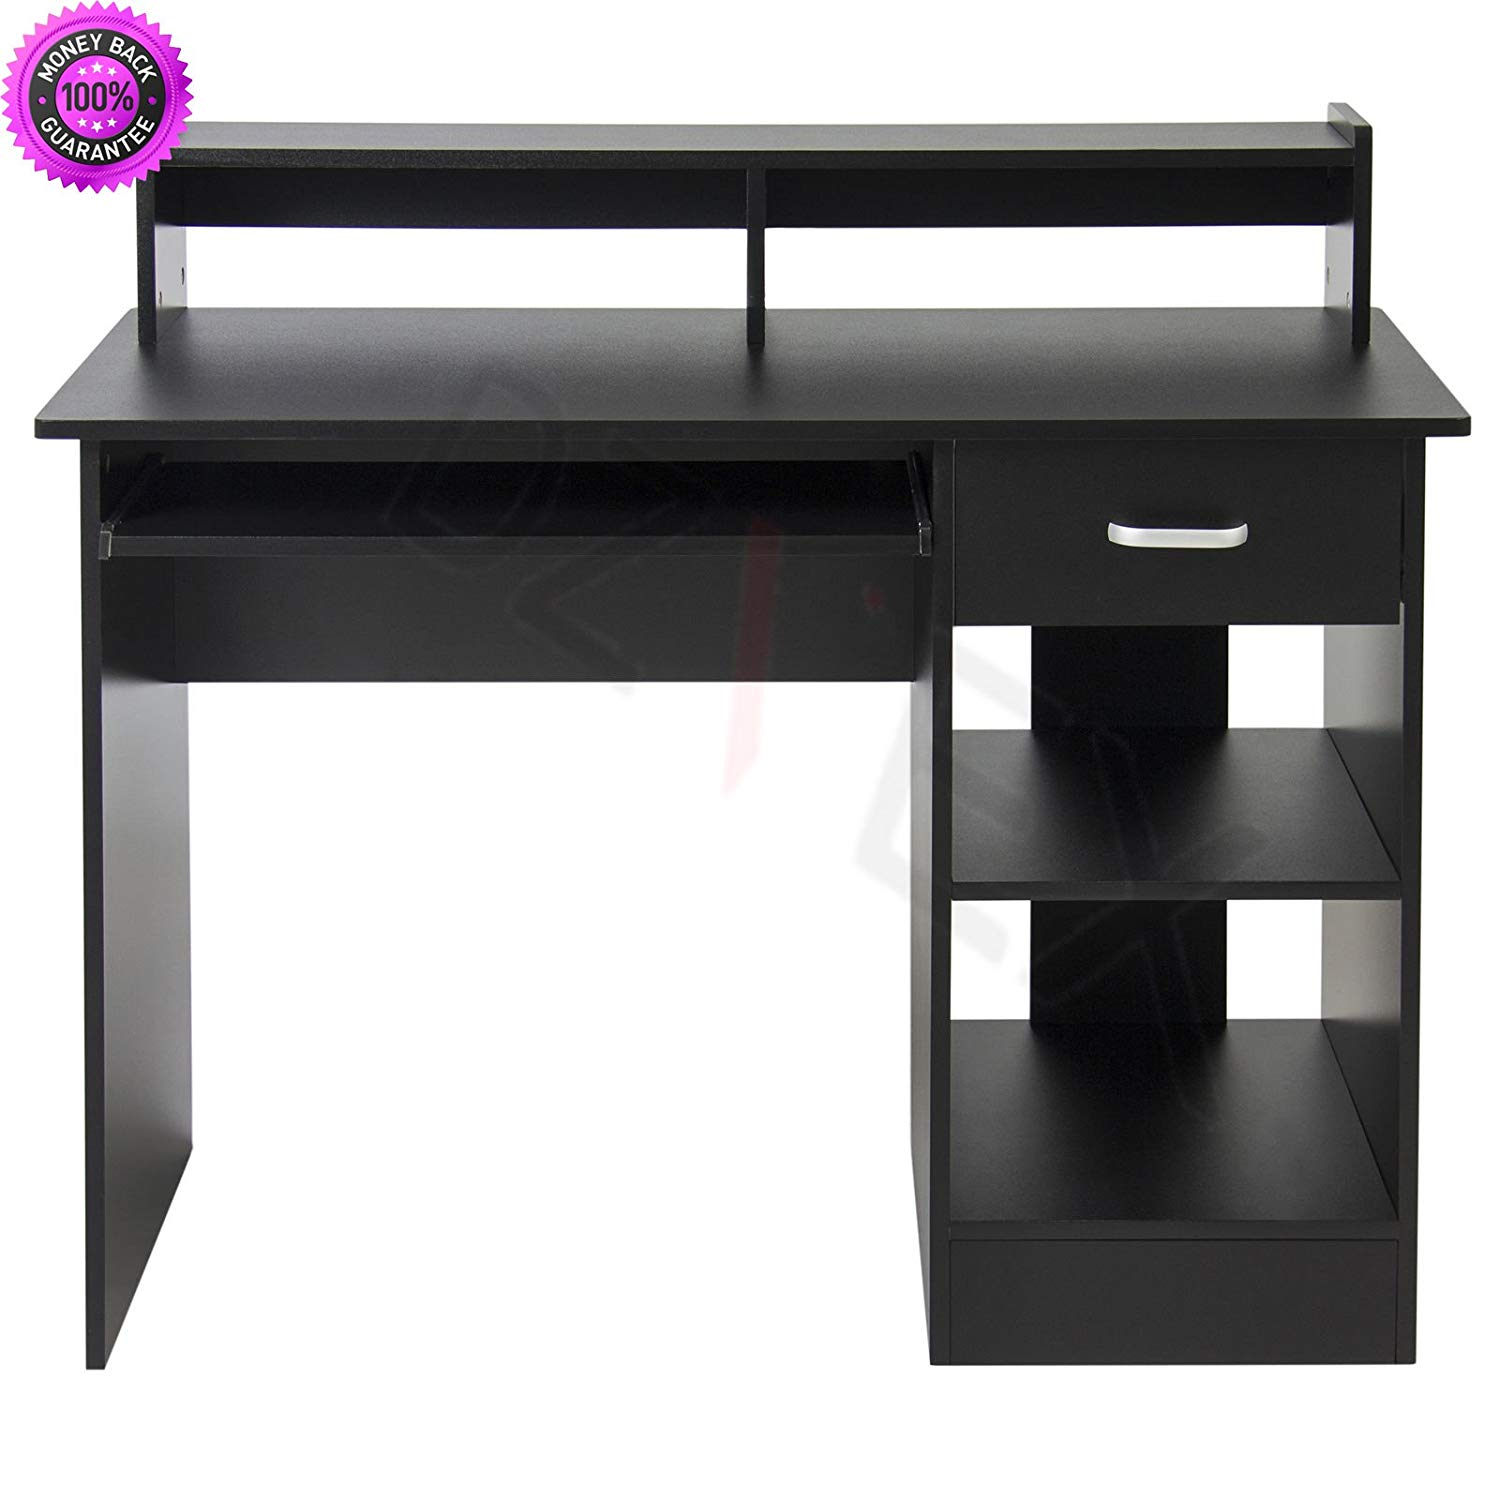 DzVeX_Computer Desk Home Laptop Table College Home Office Furniture Work Station-Black And home office desk home office furniture collections modular home office furniture office furniture